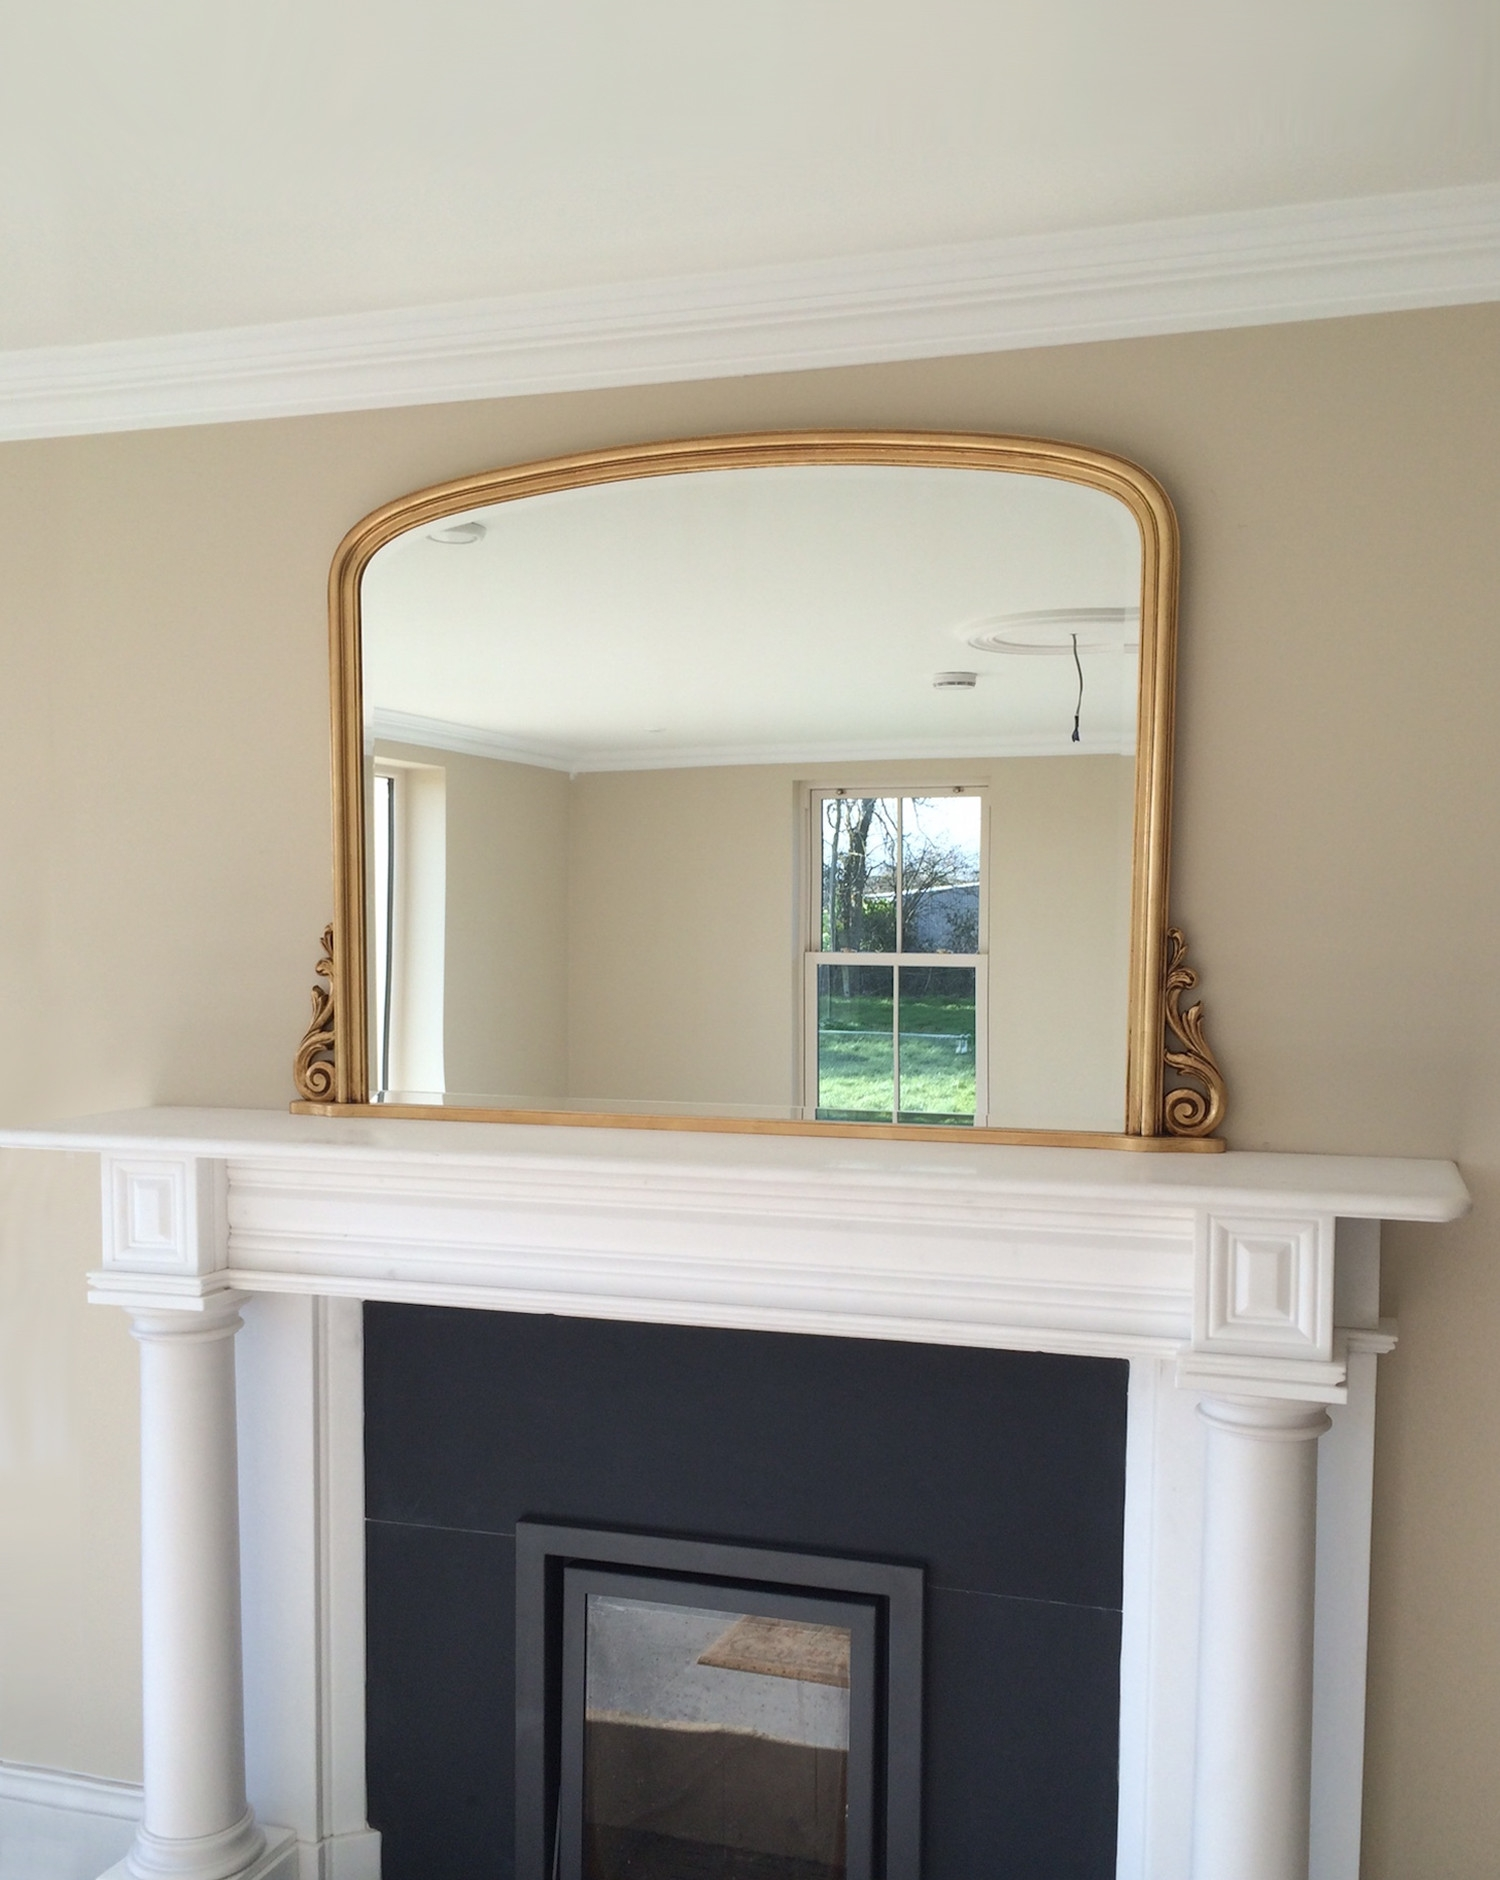 Libov0 Gold Overmantel Gold Mirrors For Sale Panfili Mirrors With Overmantel Mirror (Image 7 of 15)